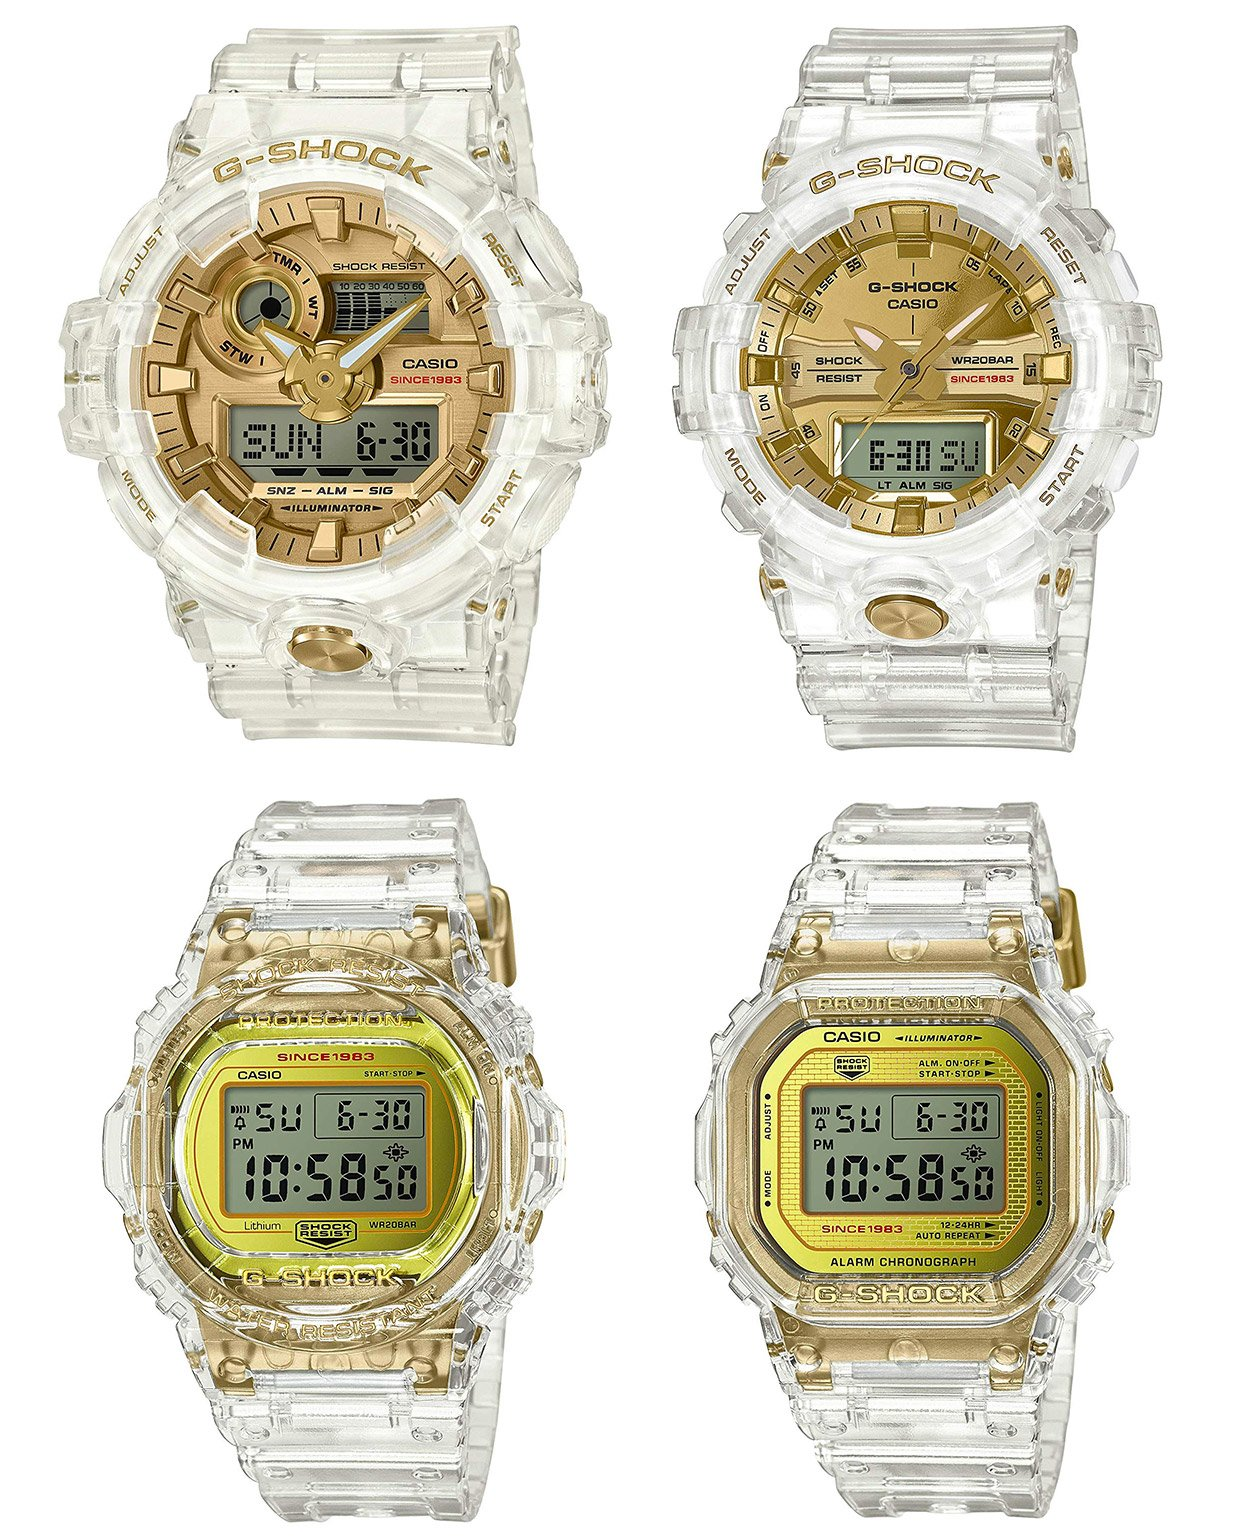 The Casio G-Shock Glacier Gold Watches Feature Semi-Transparent Parts a9bd51701dd